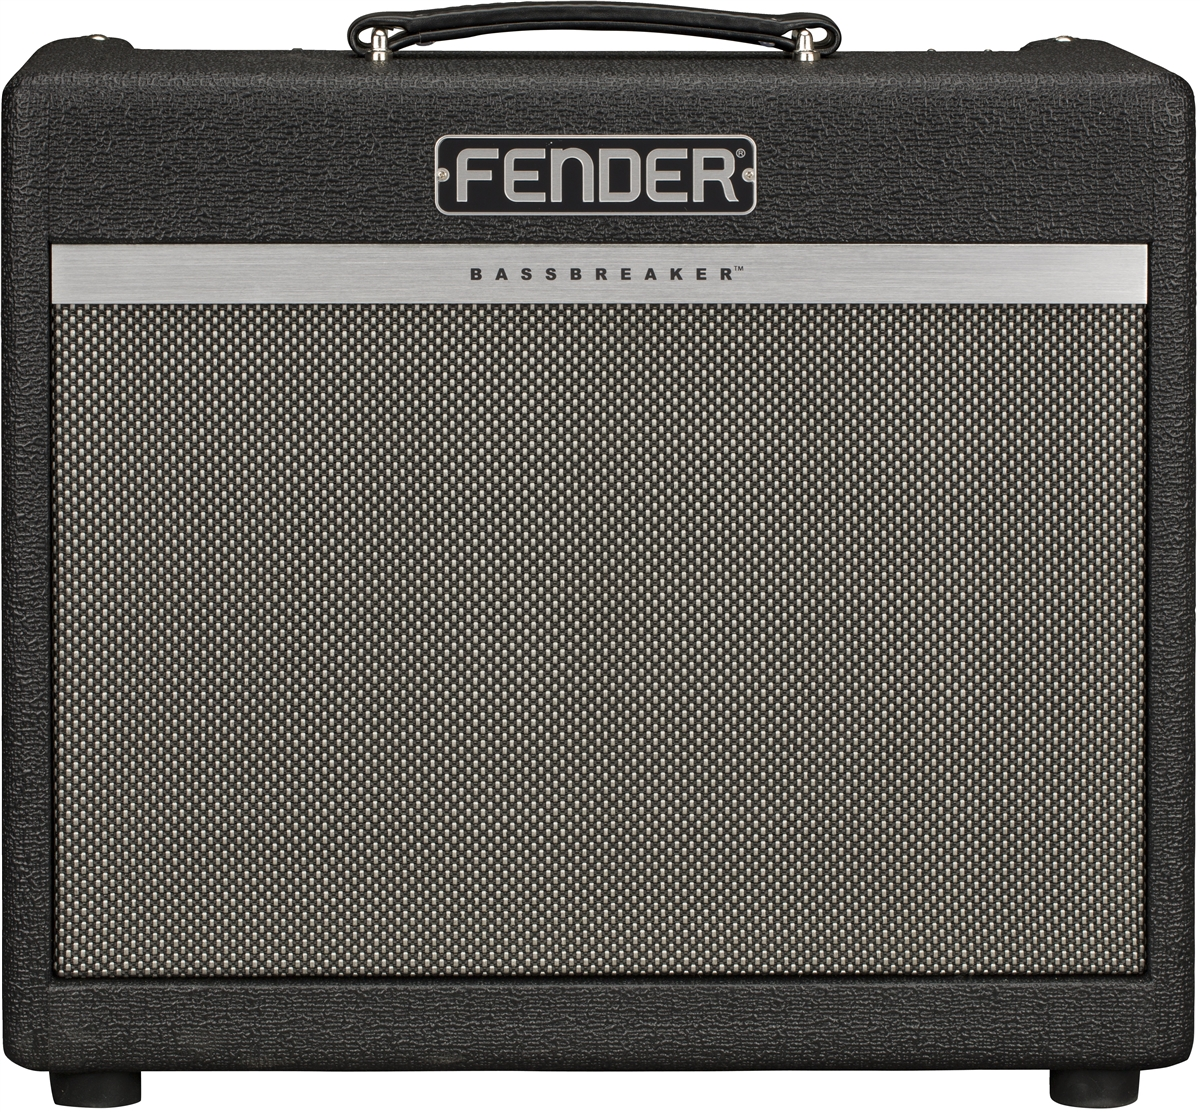 fender bassbreaker 15 combo katoomba music. Black Bedroom Furniture Sets. Home Design Ideas